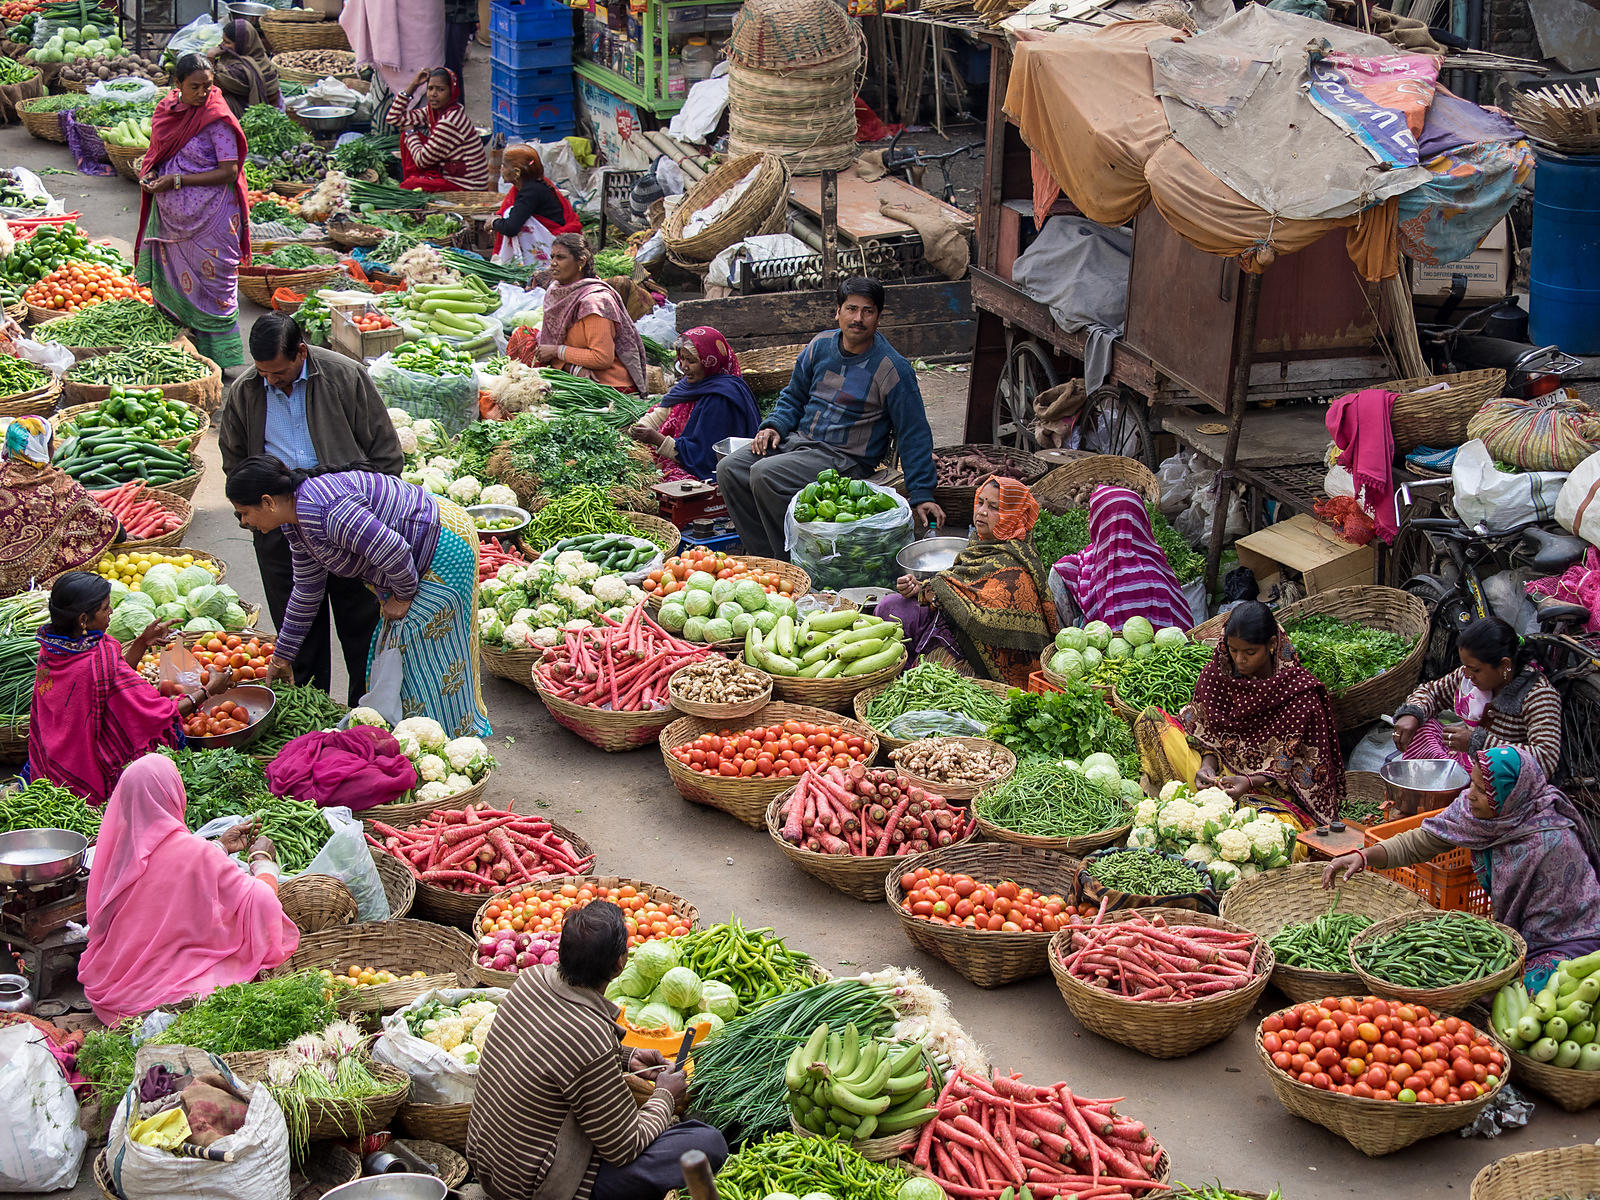 An everyday scene at any Indian vegetable market. This image was shot in Udaipur